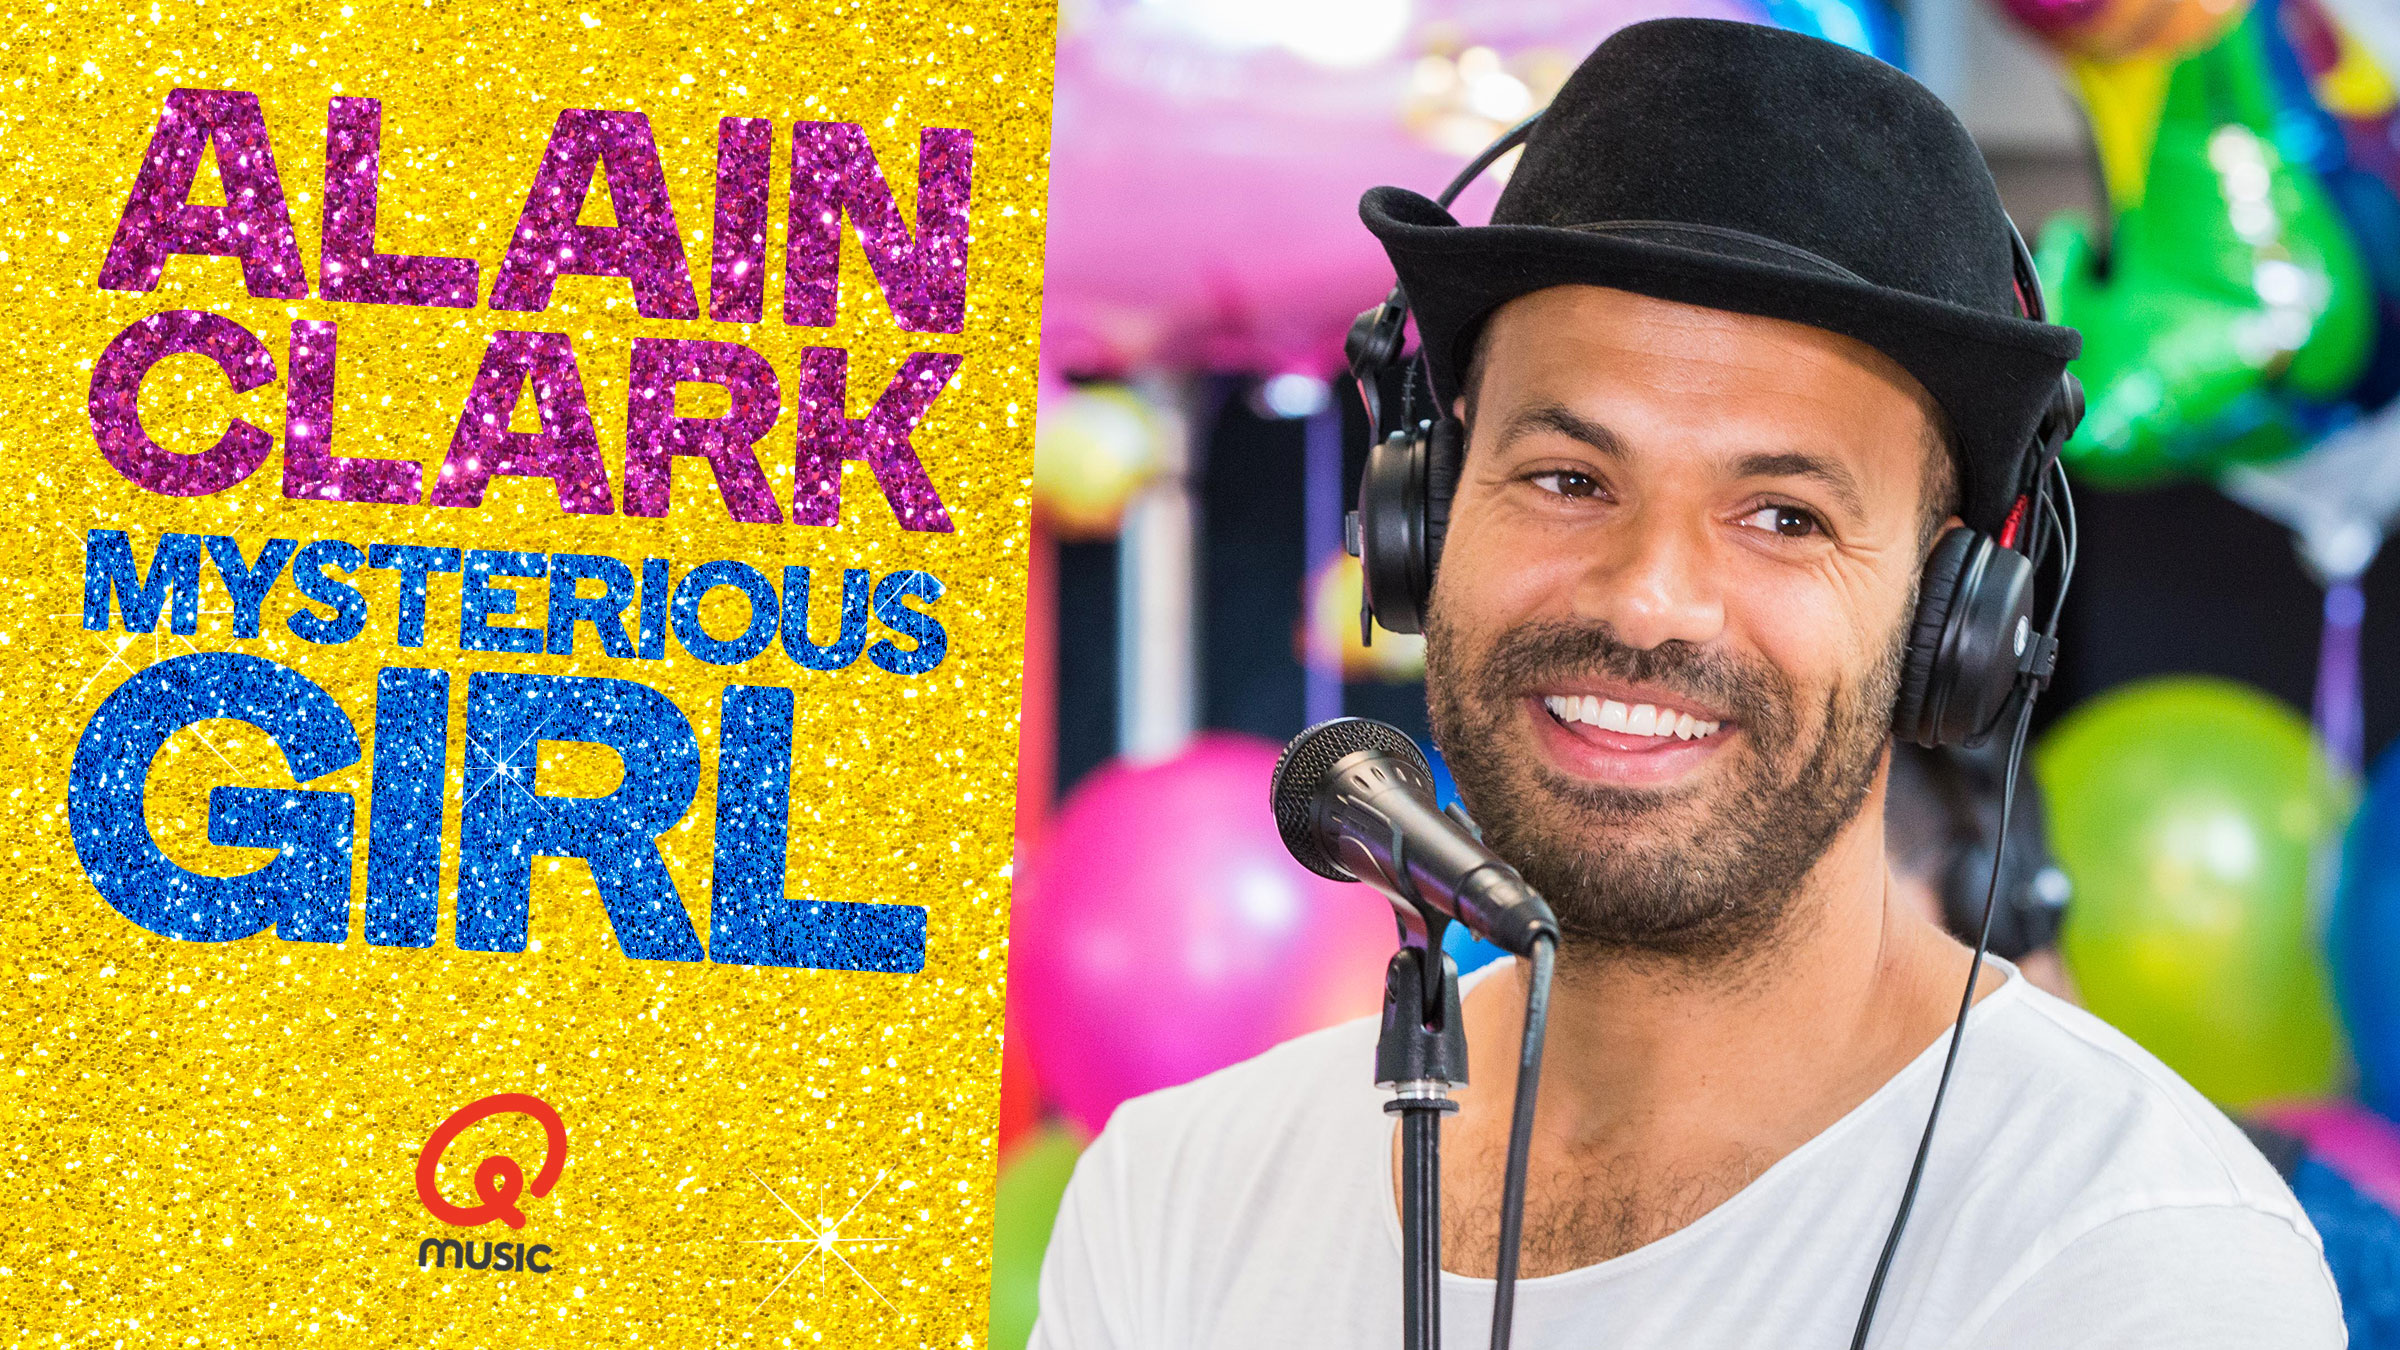 Alain clark   mysterious girl thumb